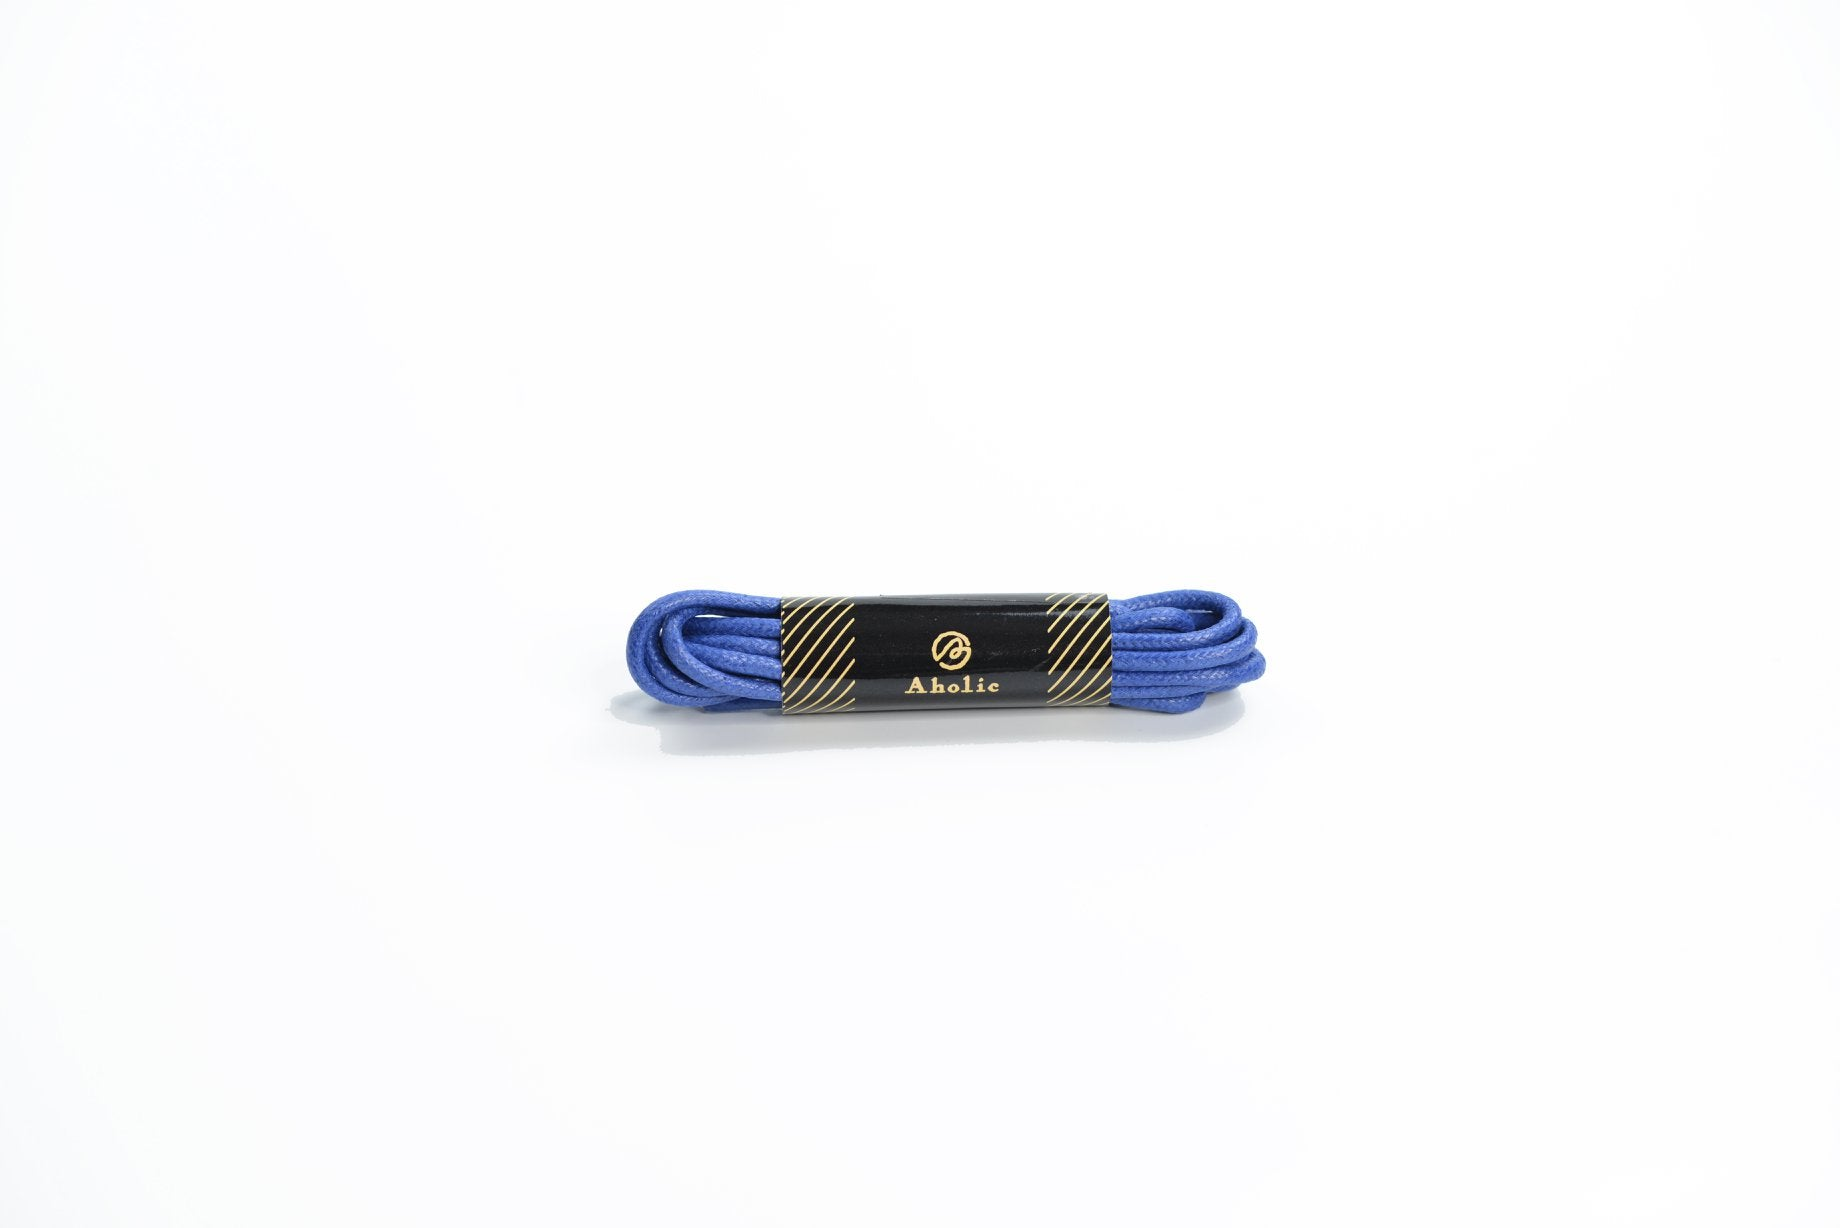 Aholic Anti-Stain Waxed Shoelaces Bundle (上蠟抗污皮鞋鞋帶組合) - 7 Colors (7色)-Shoelaces-Navy Selected Shop